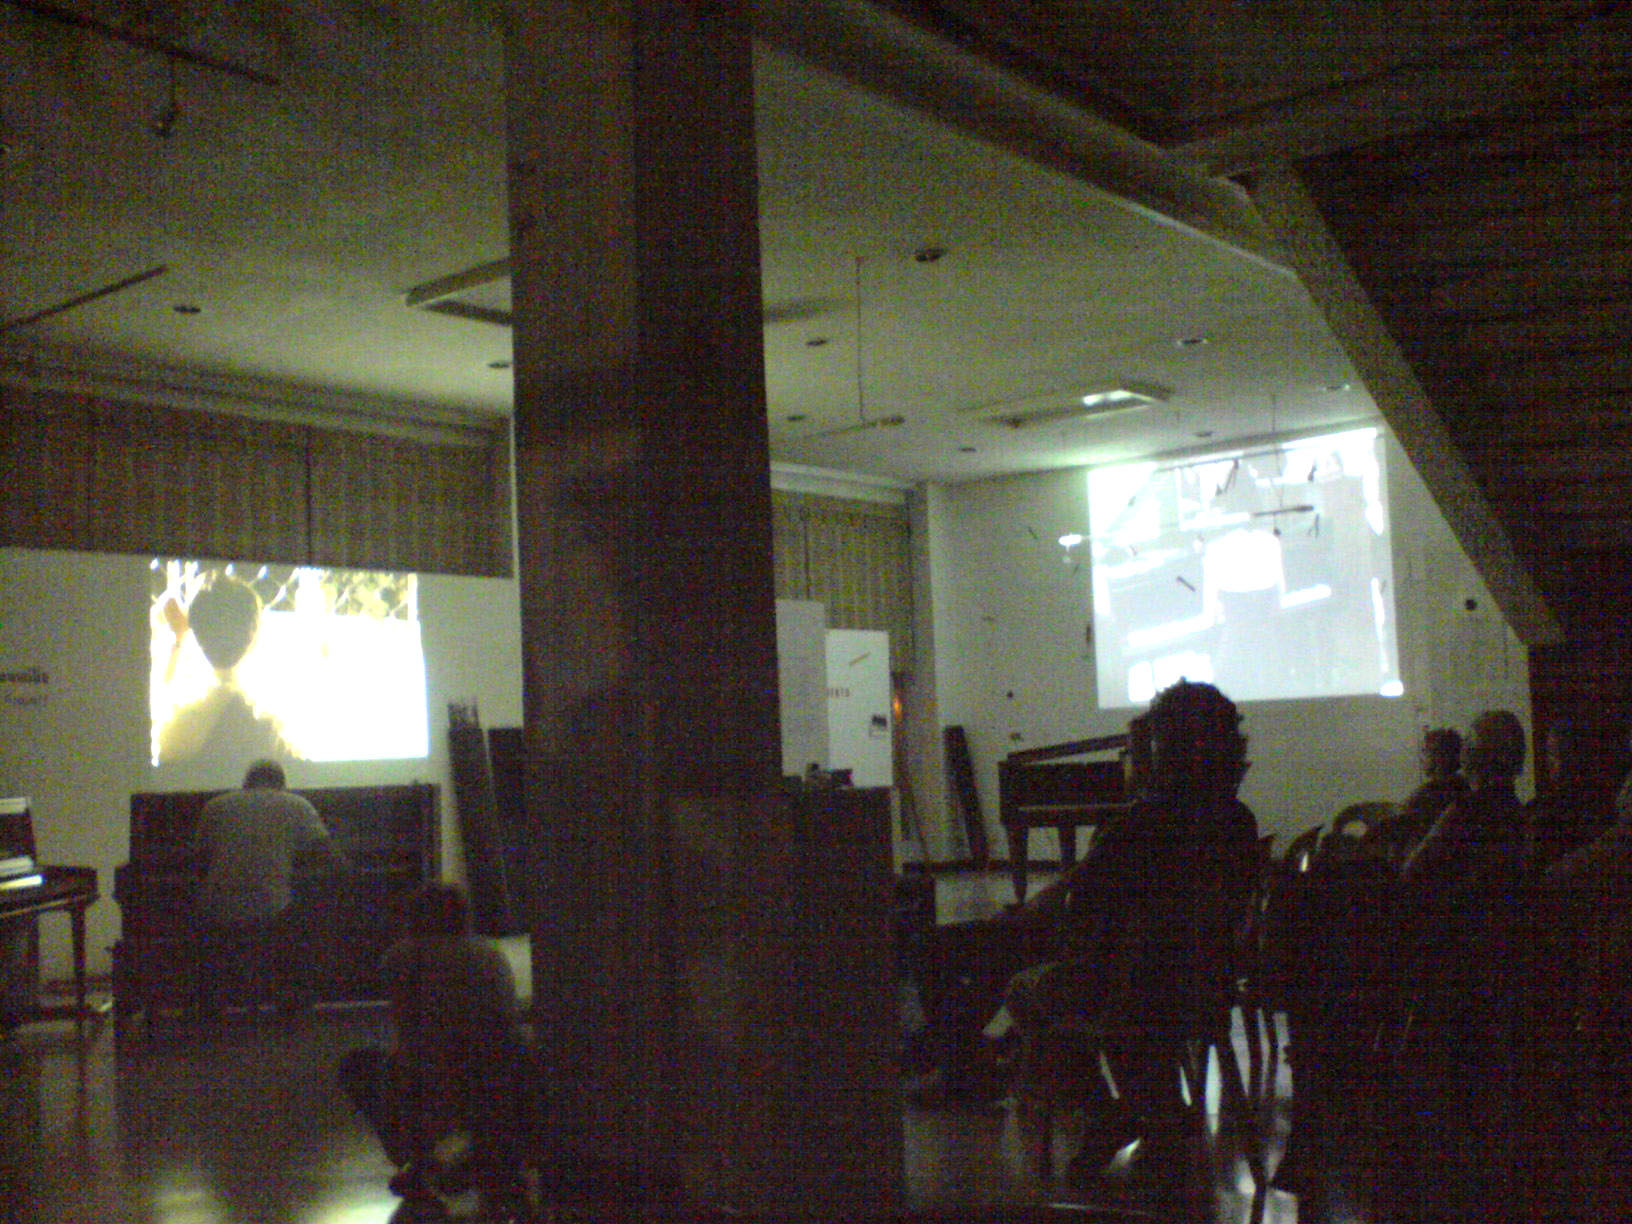 Film screening and music improv (In line with the Nicanor Abelardo Grand Piano Project)